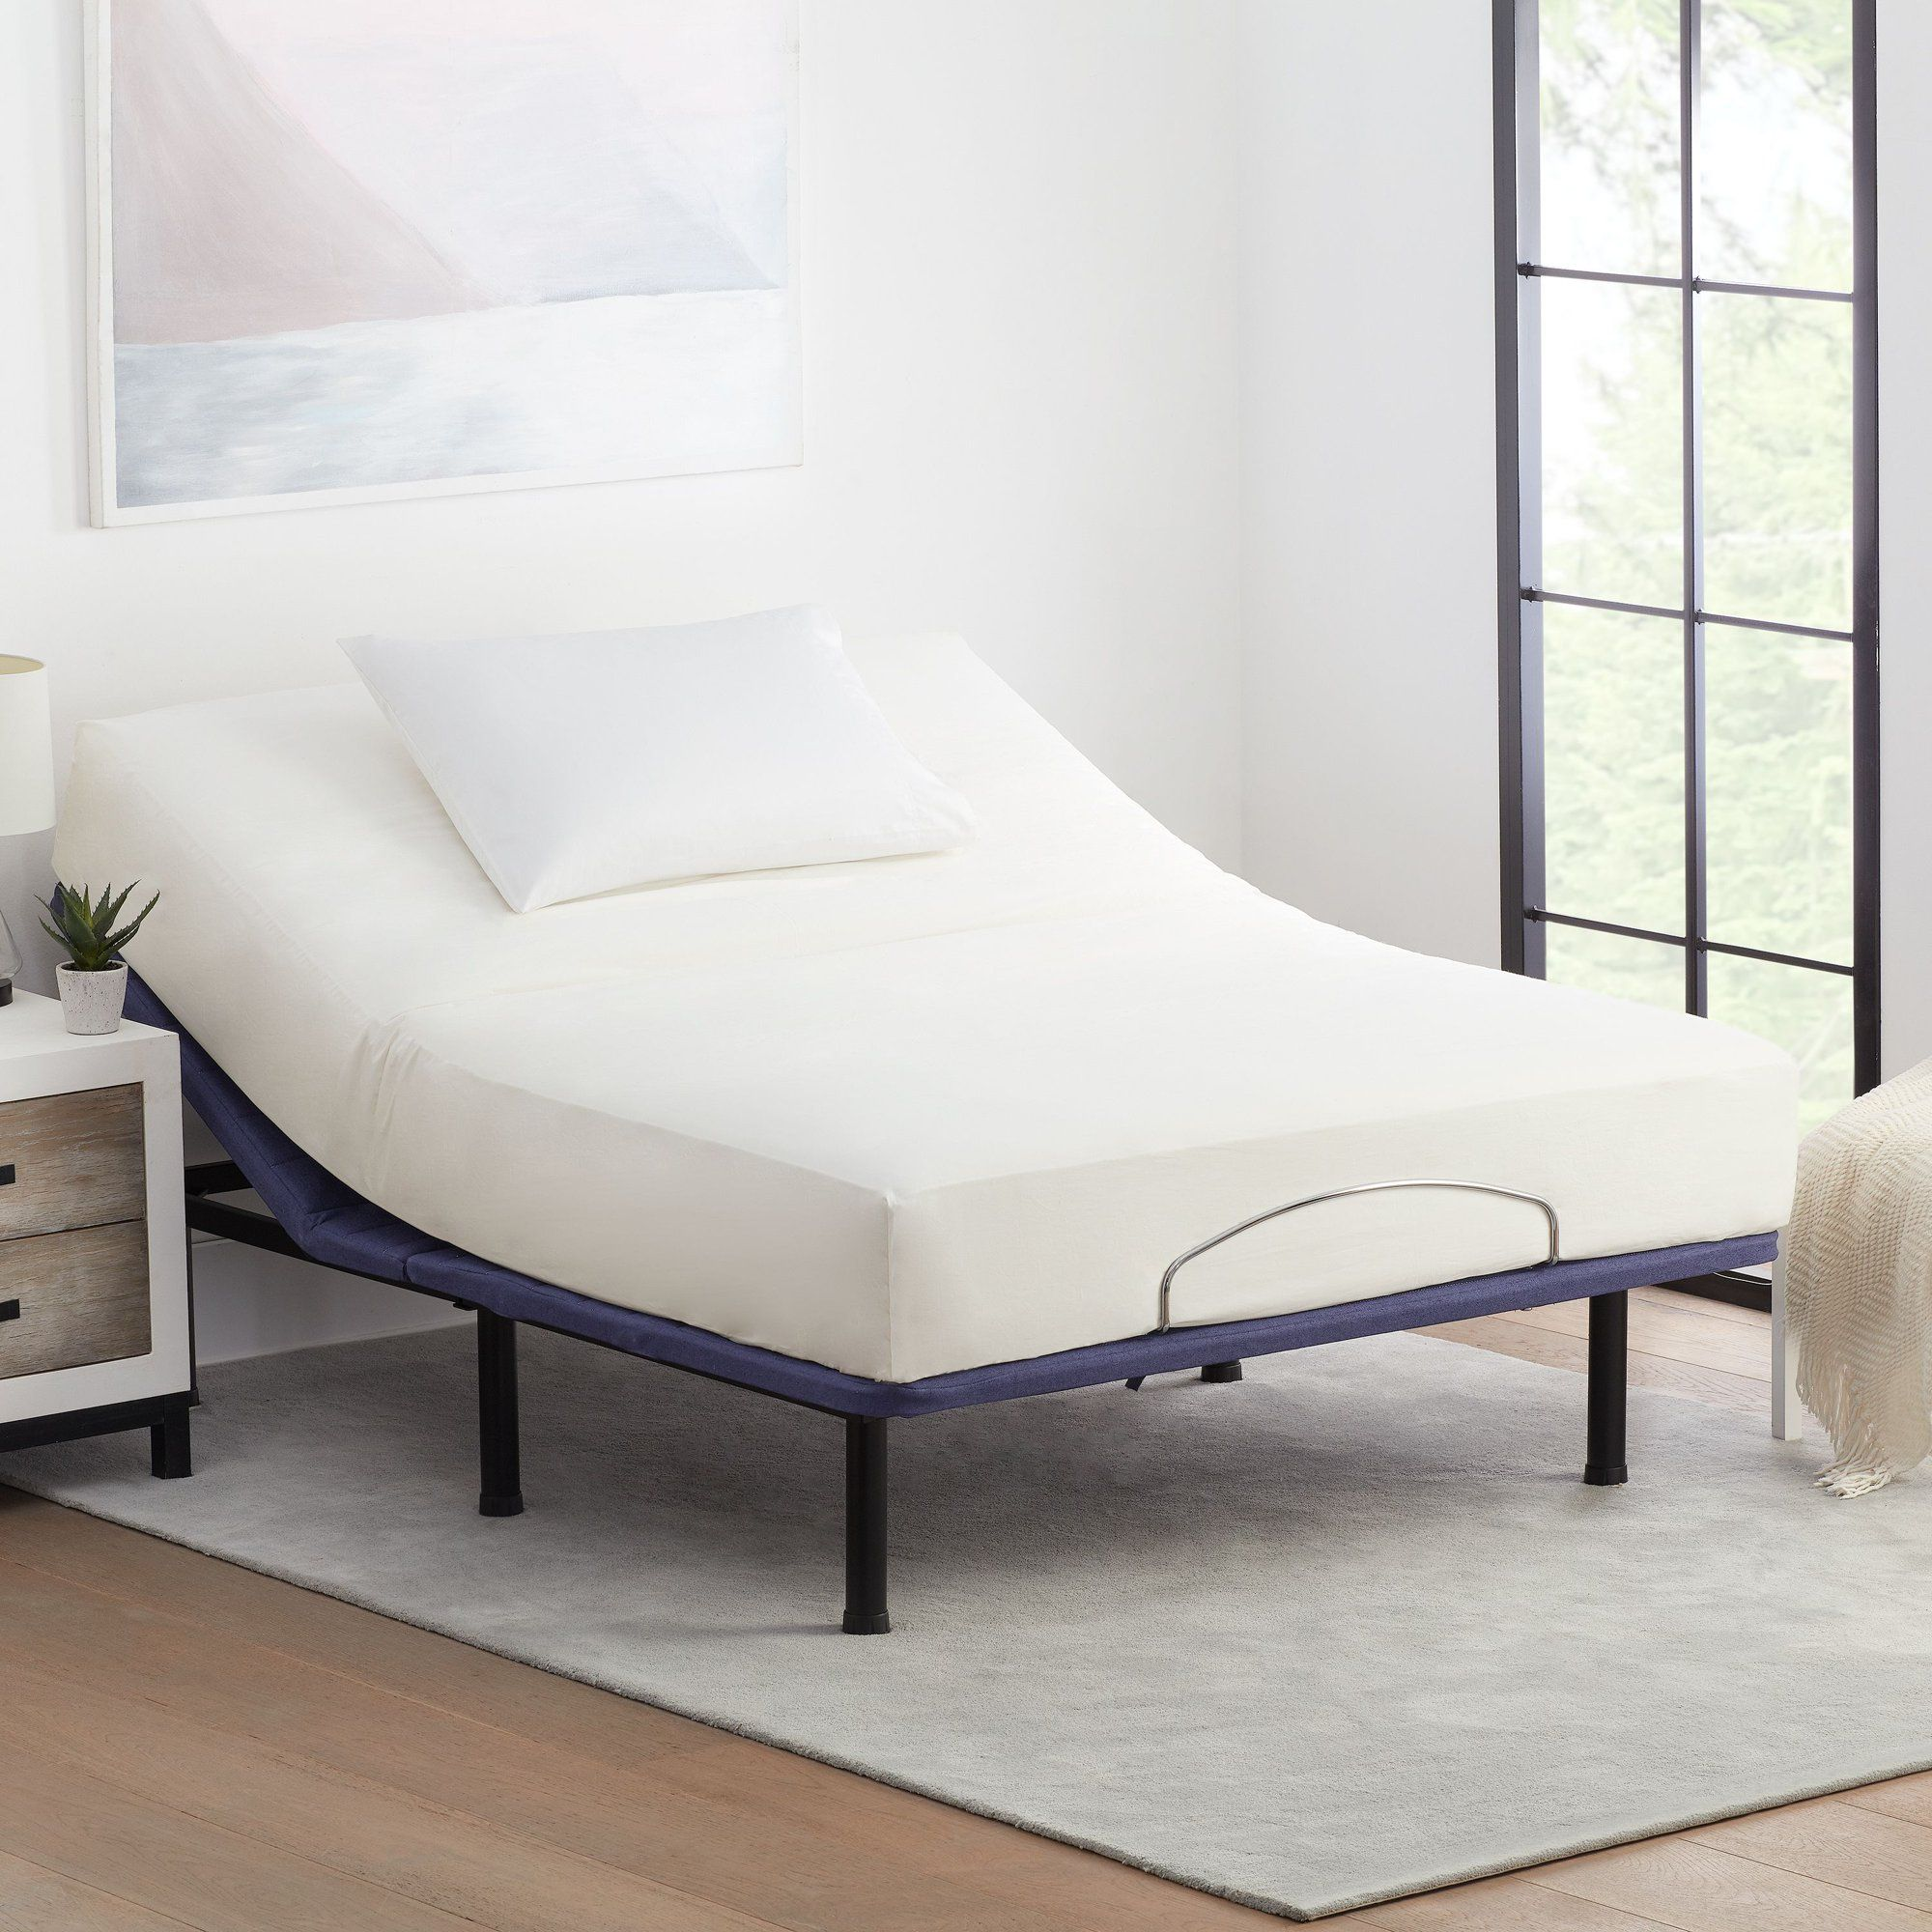 Mainstays Power Adjustable Bed Frame with Wireless Remote